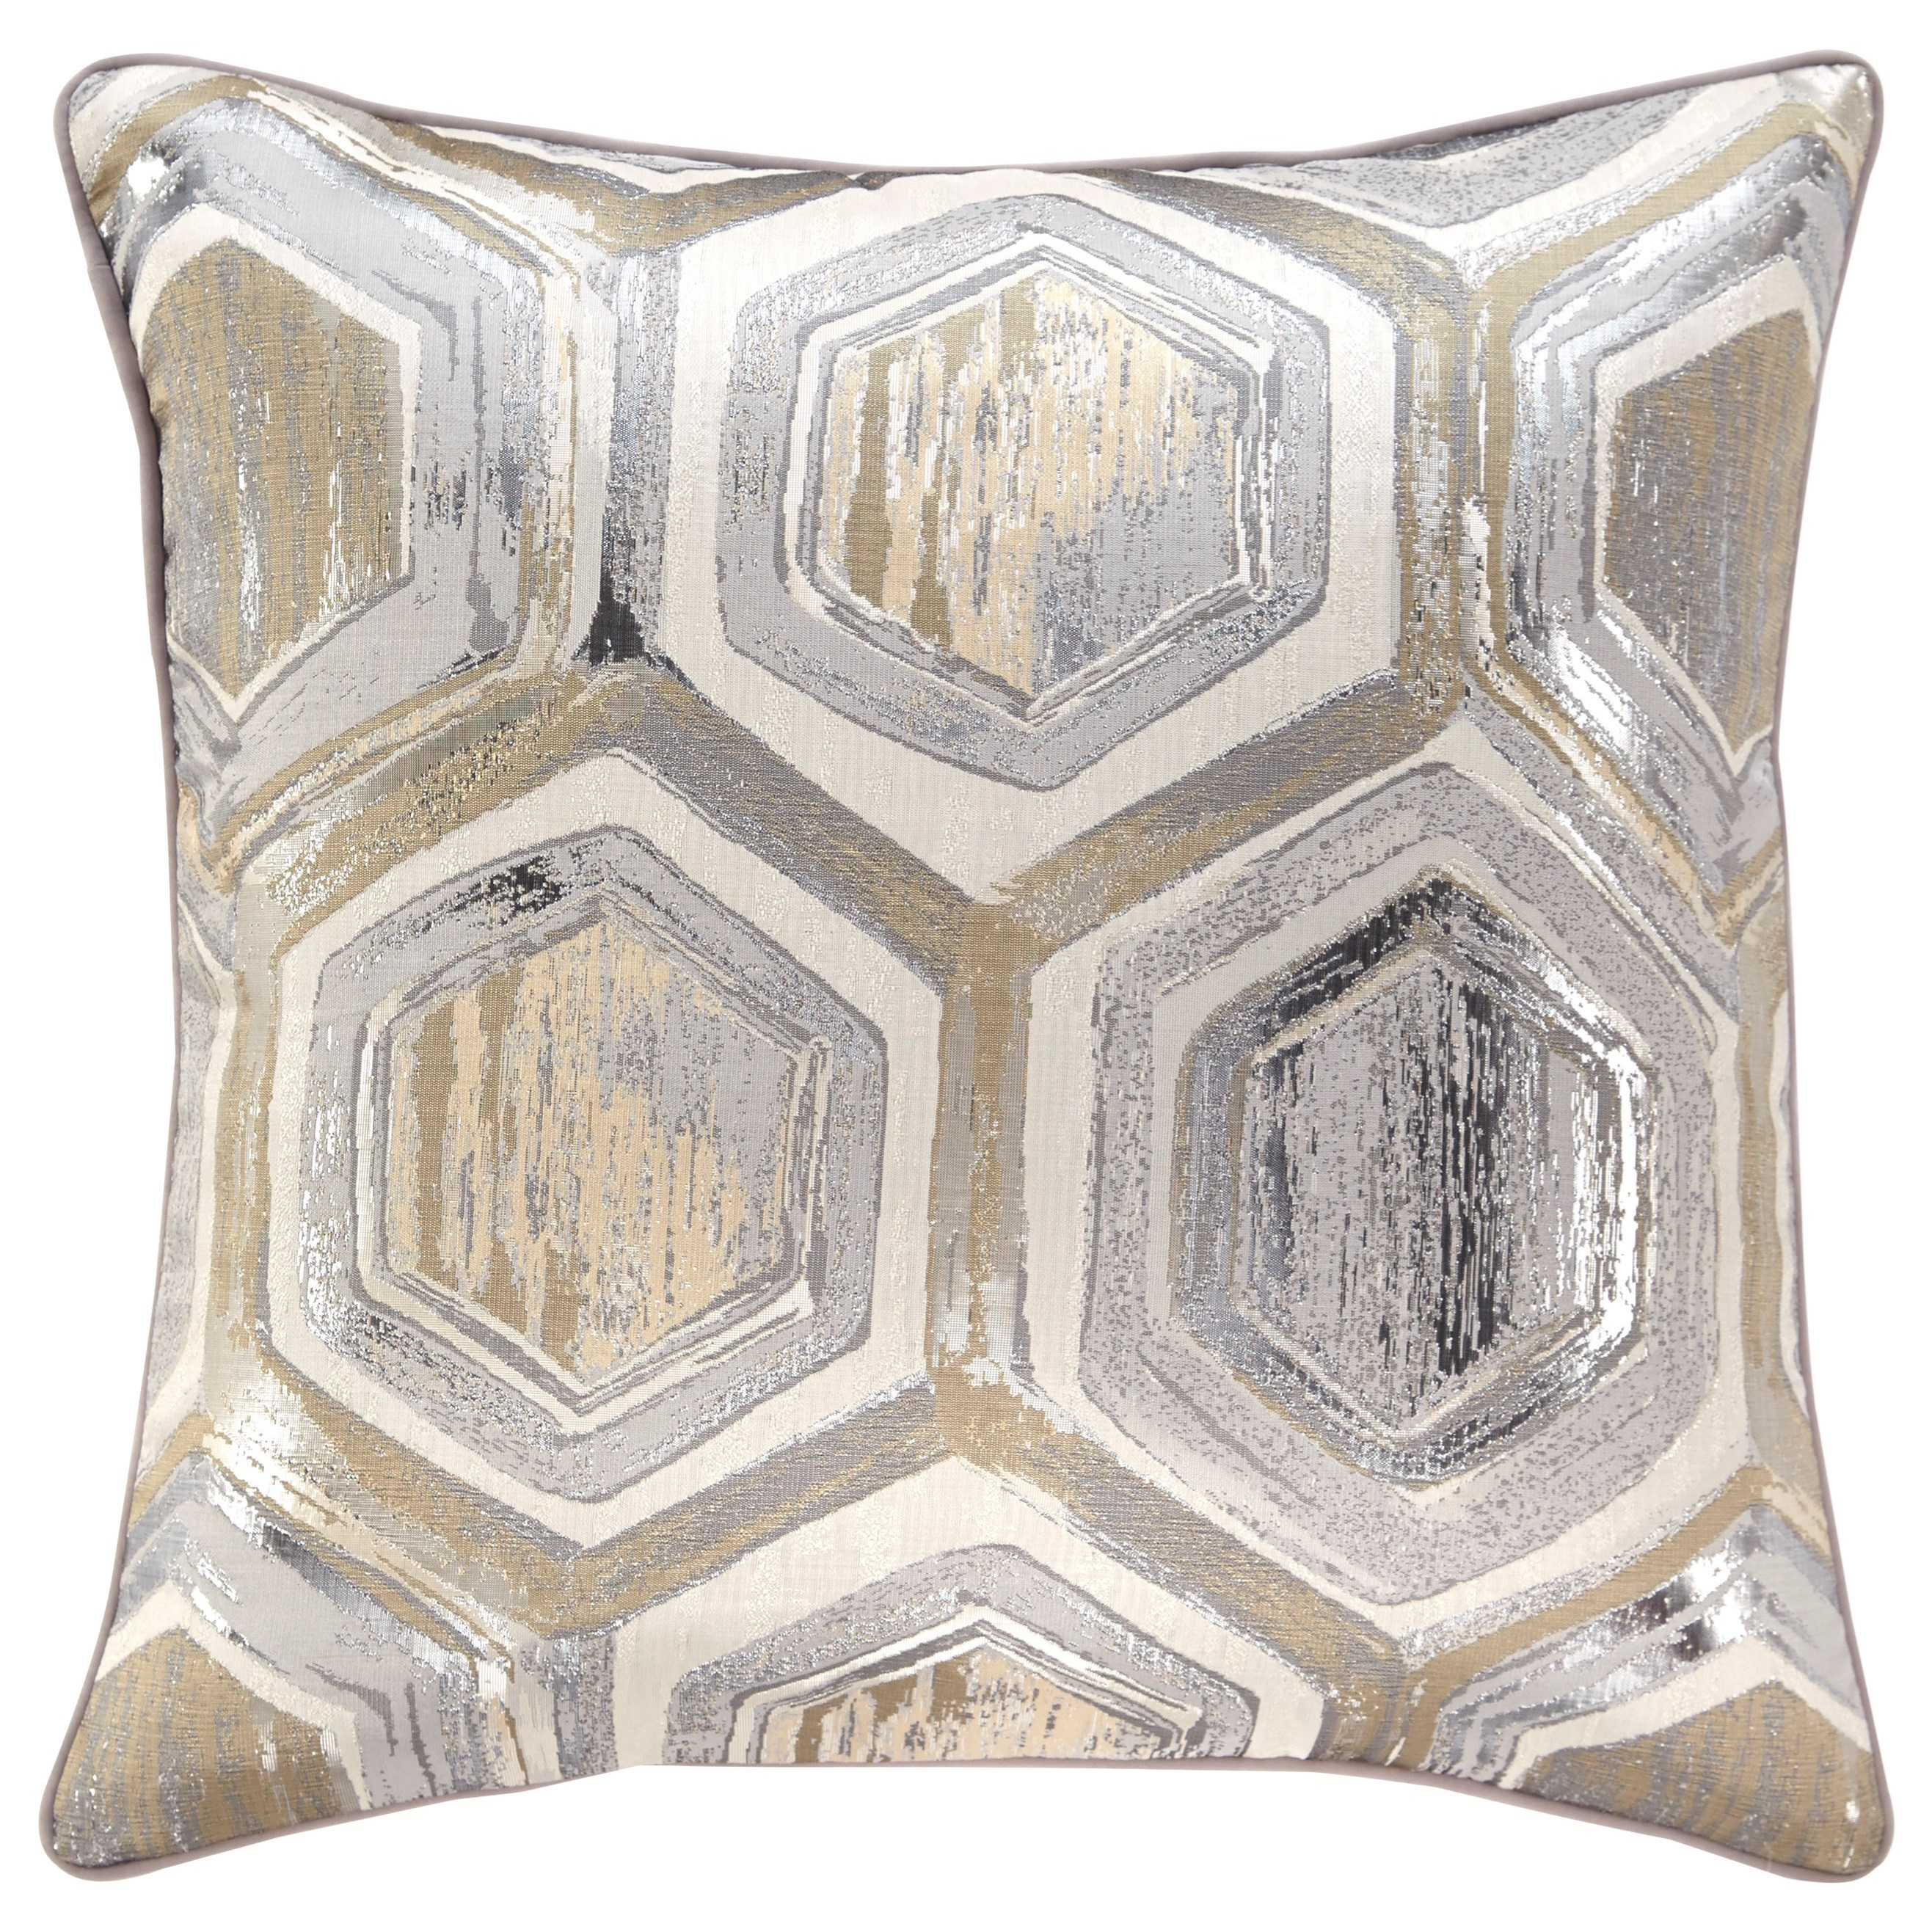 Pillows Meiling Metallic Pillow by Ashley (Signature Design) at Johnny Janosik